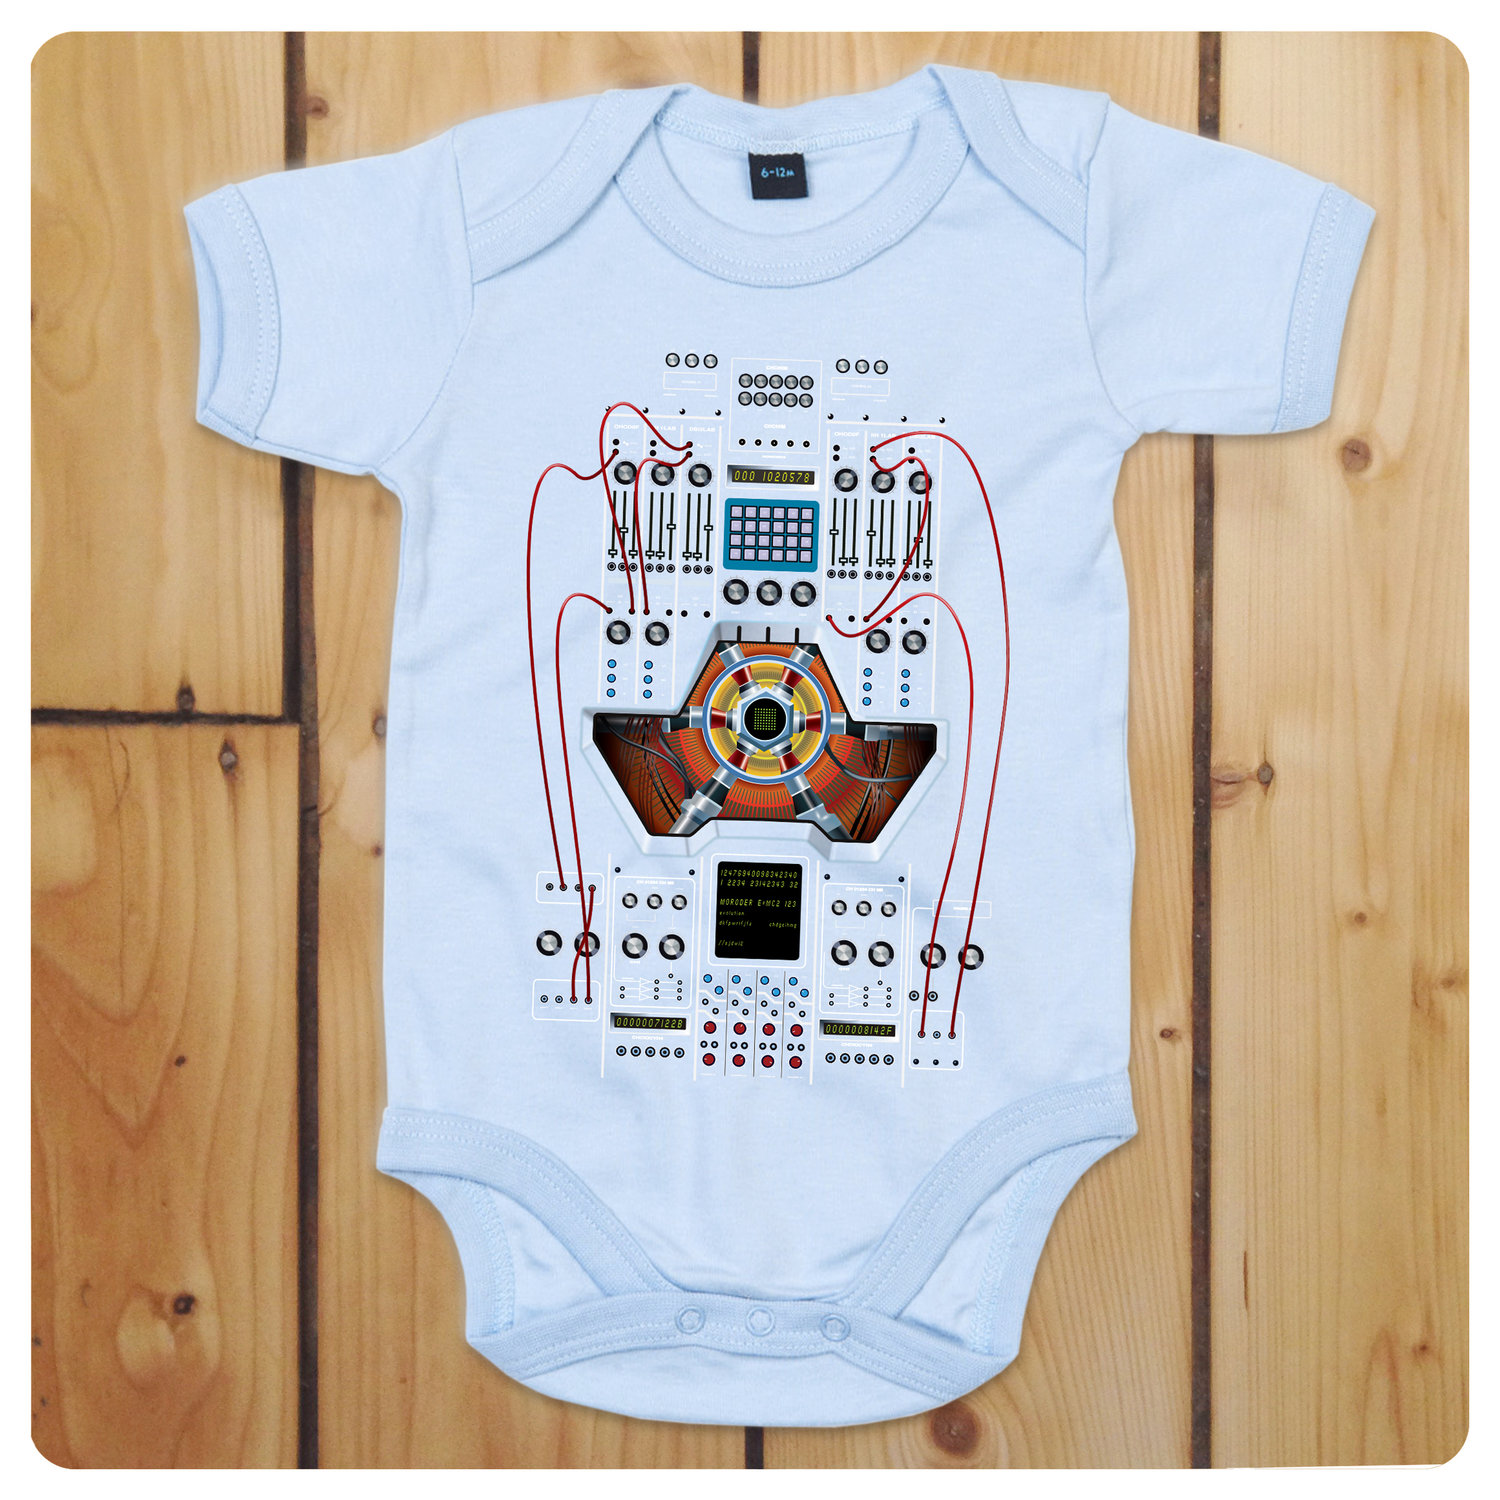 51810fd12 Giorgio Moroder Cyborg  Robot Light Blue Baby Grow   Bodysuit ...